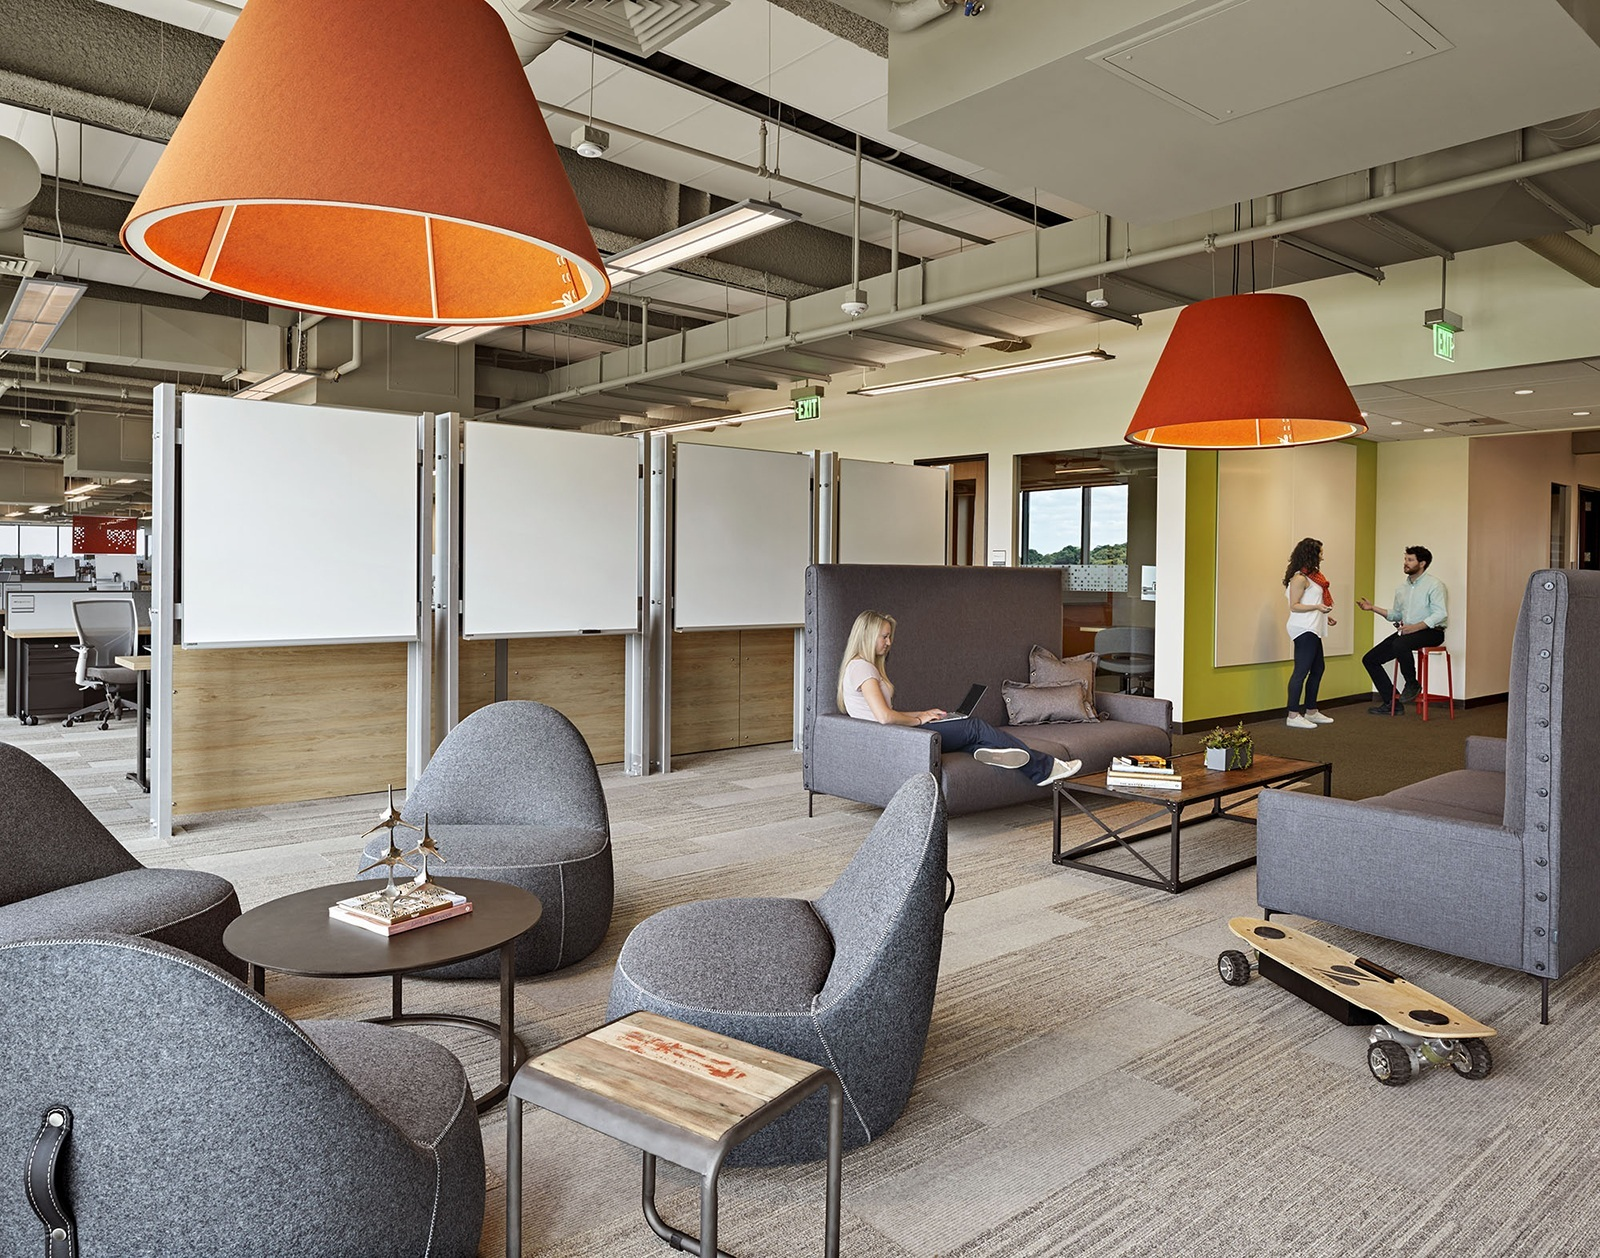 A Tour Of Tripadvisor S New Beautiful Headquarters Officelovin 39: baker group kitchen design